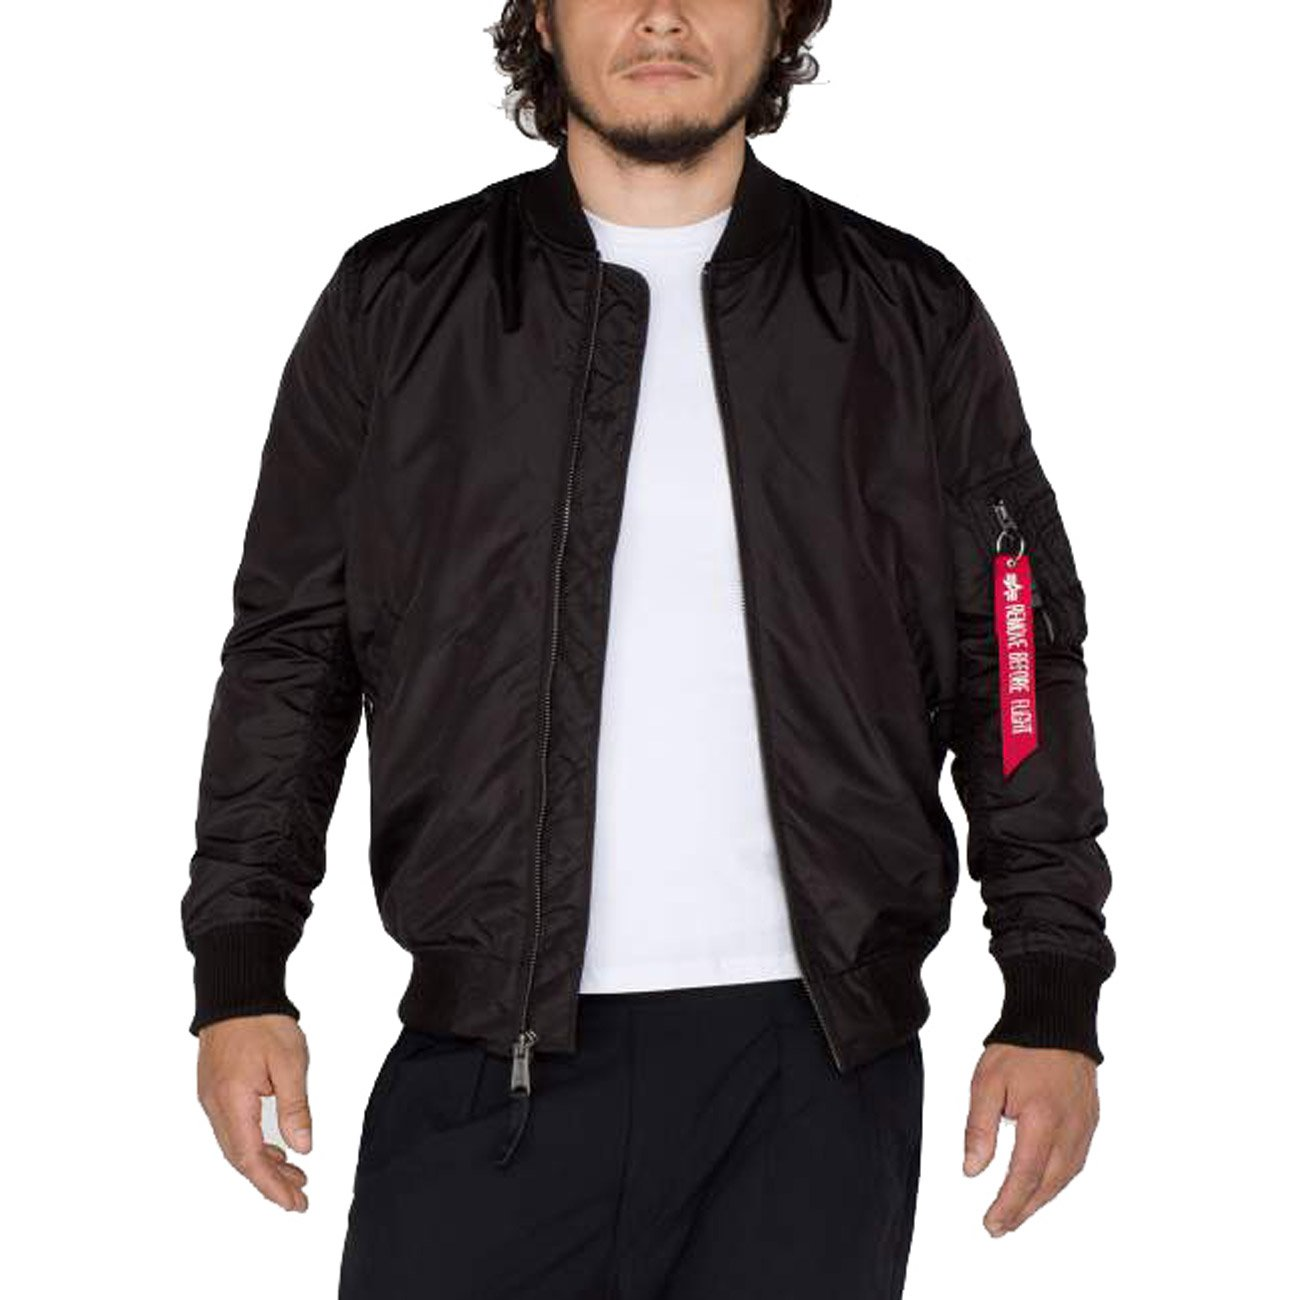 Alpha Industries Herren Jacke MA 1 TT Long black , Größe:S